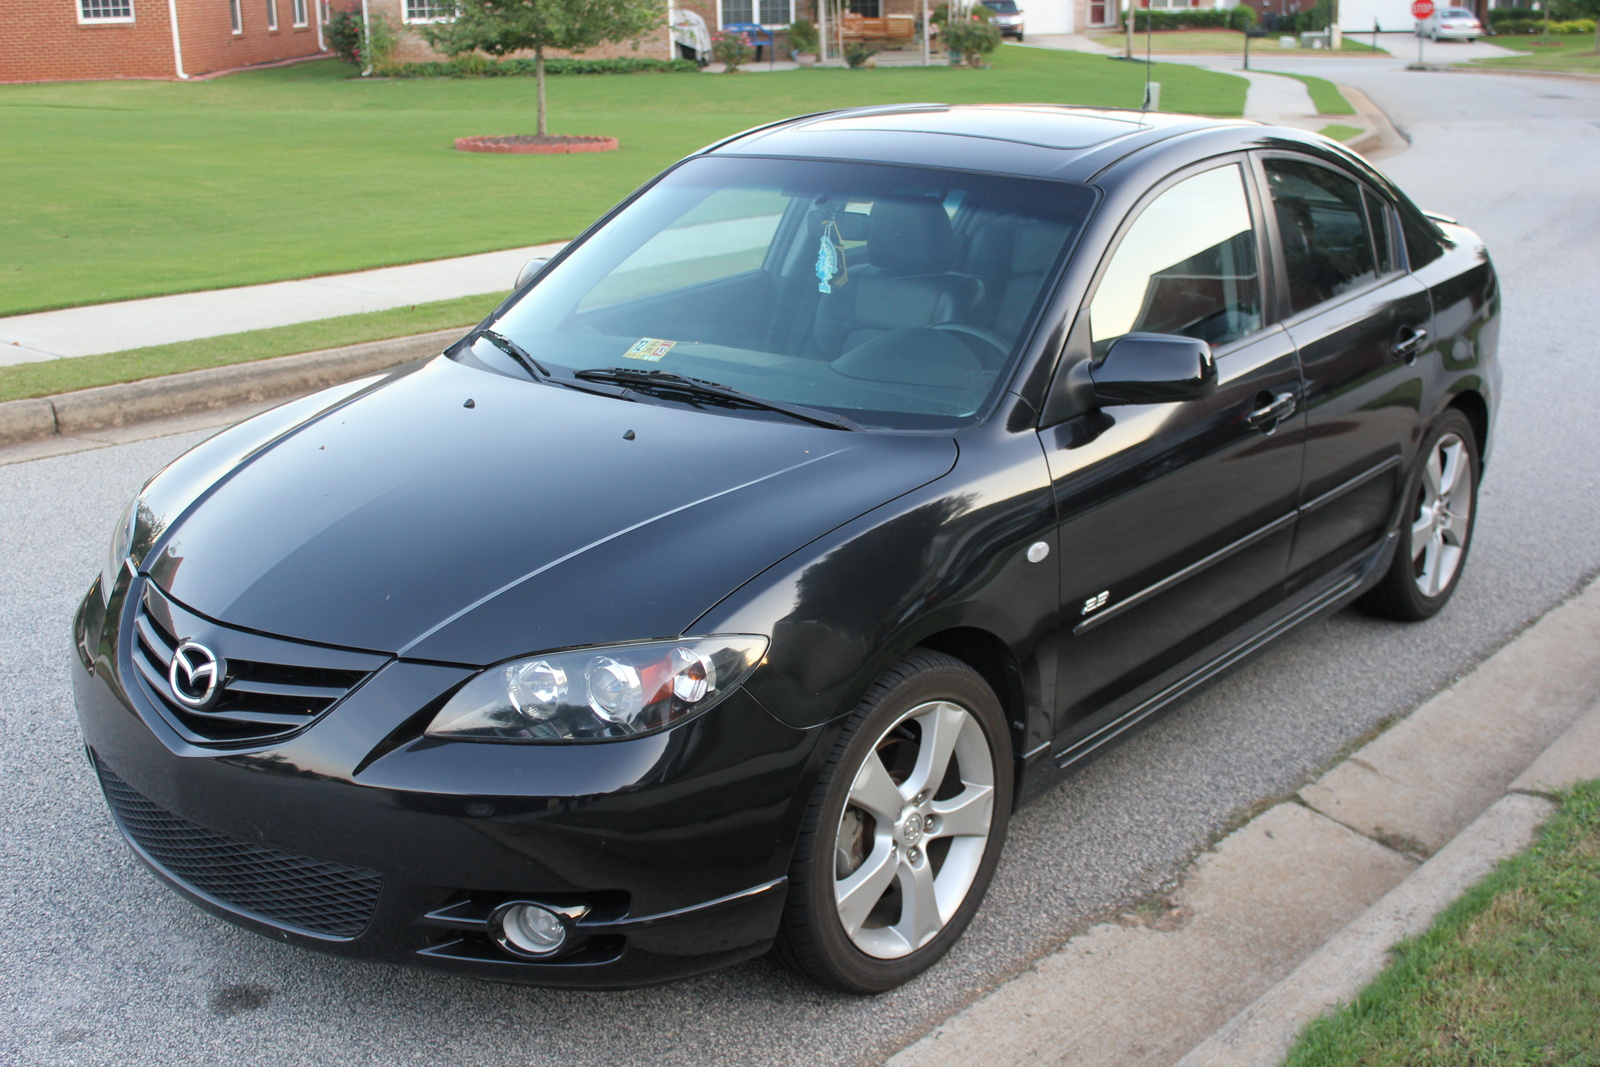 2004 mazda mazda3 for sale cargurus autos post. Black Bedroom Furniture Sets. Home Design Ideas